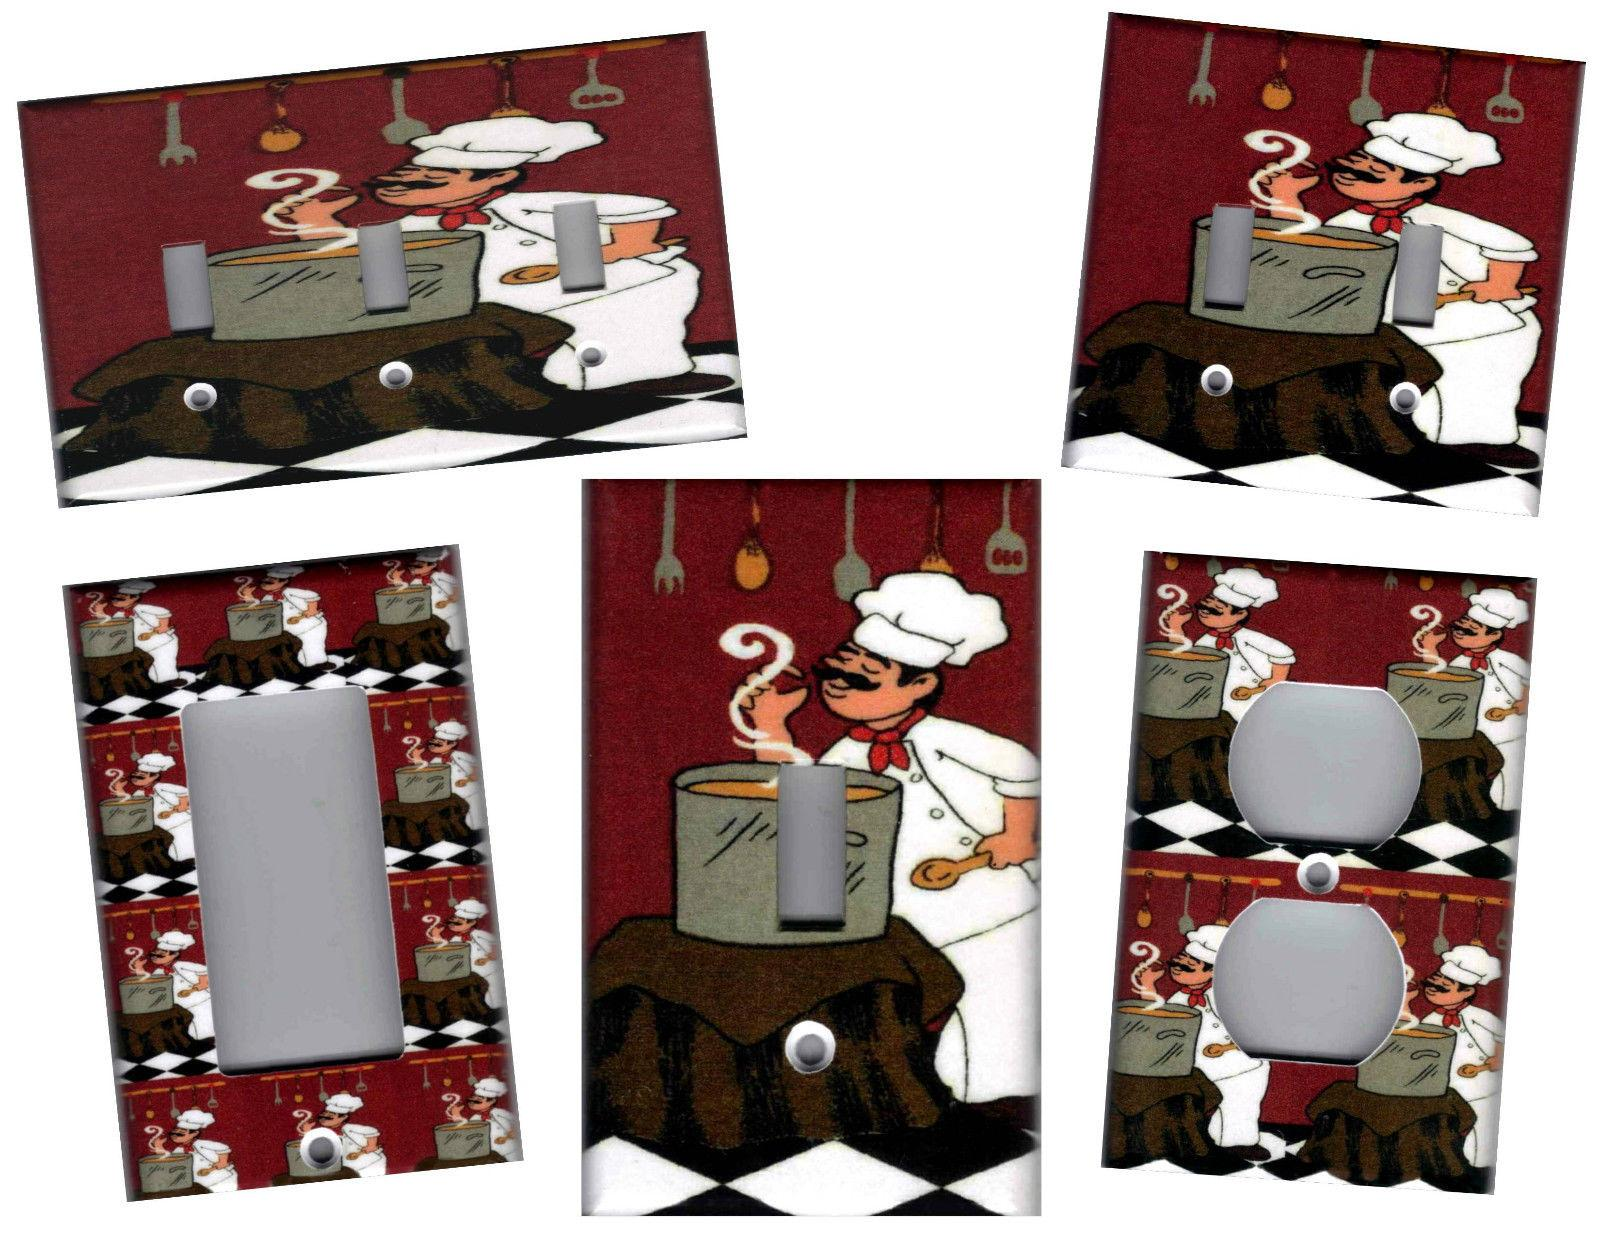 FAT CHEF WITH POT ON RED BURGUNDY KITCHEN HOME DECOR LIGHT S